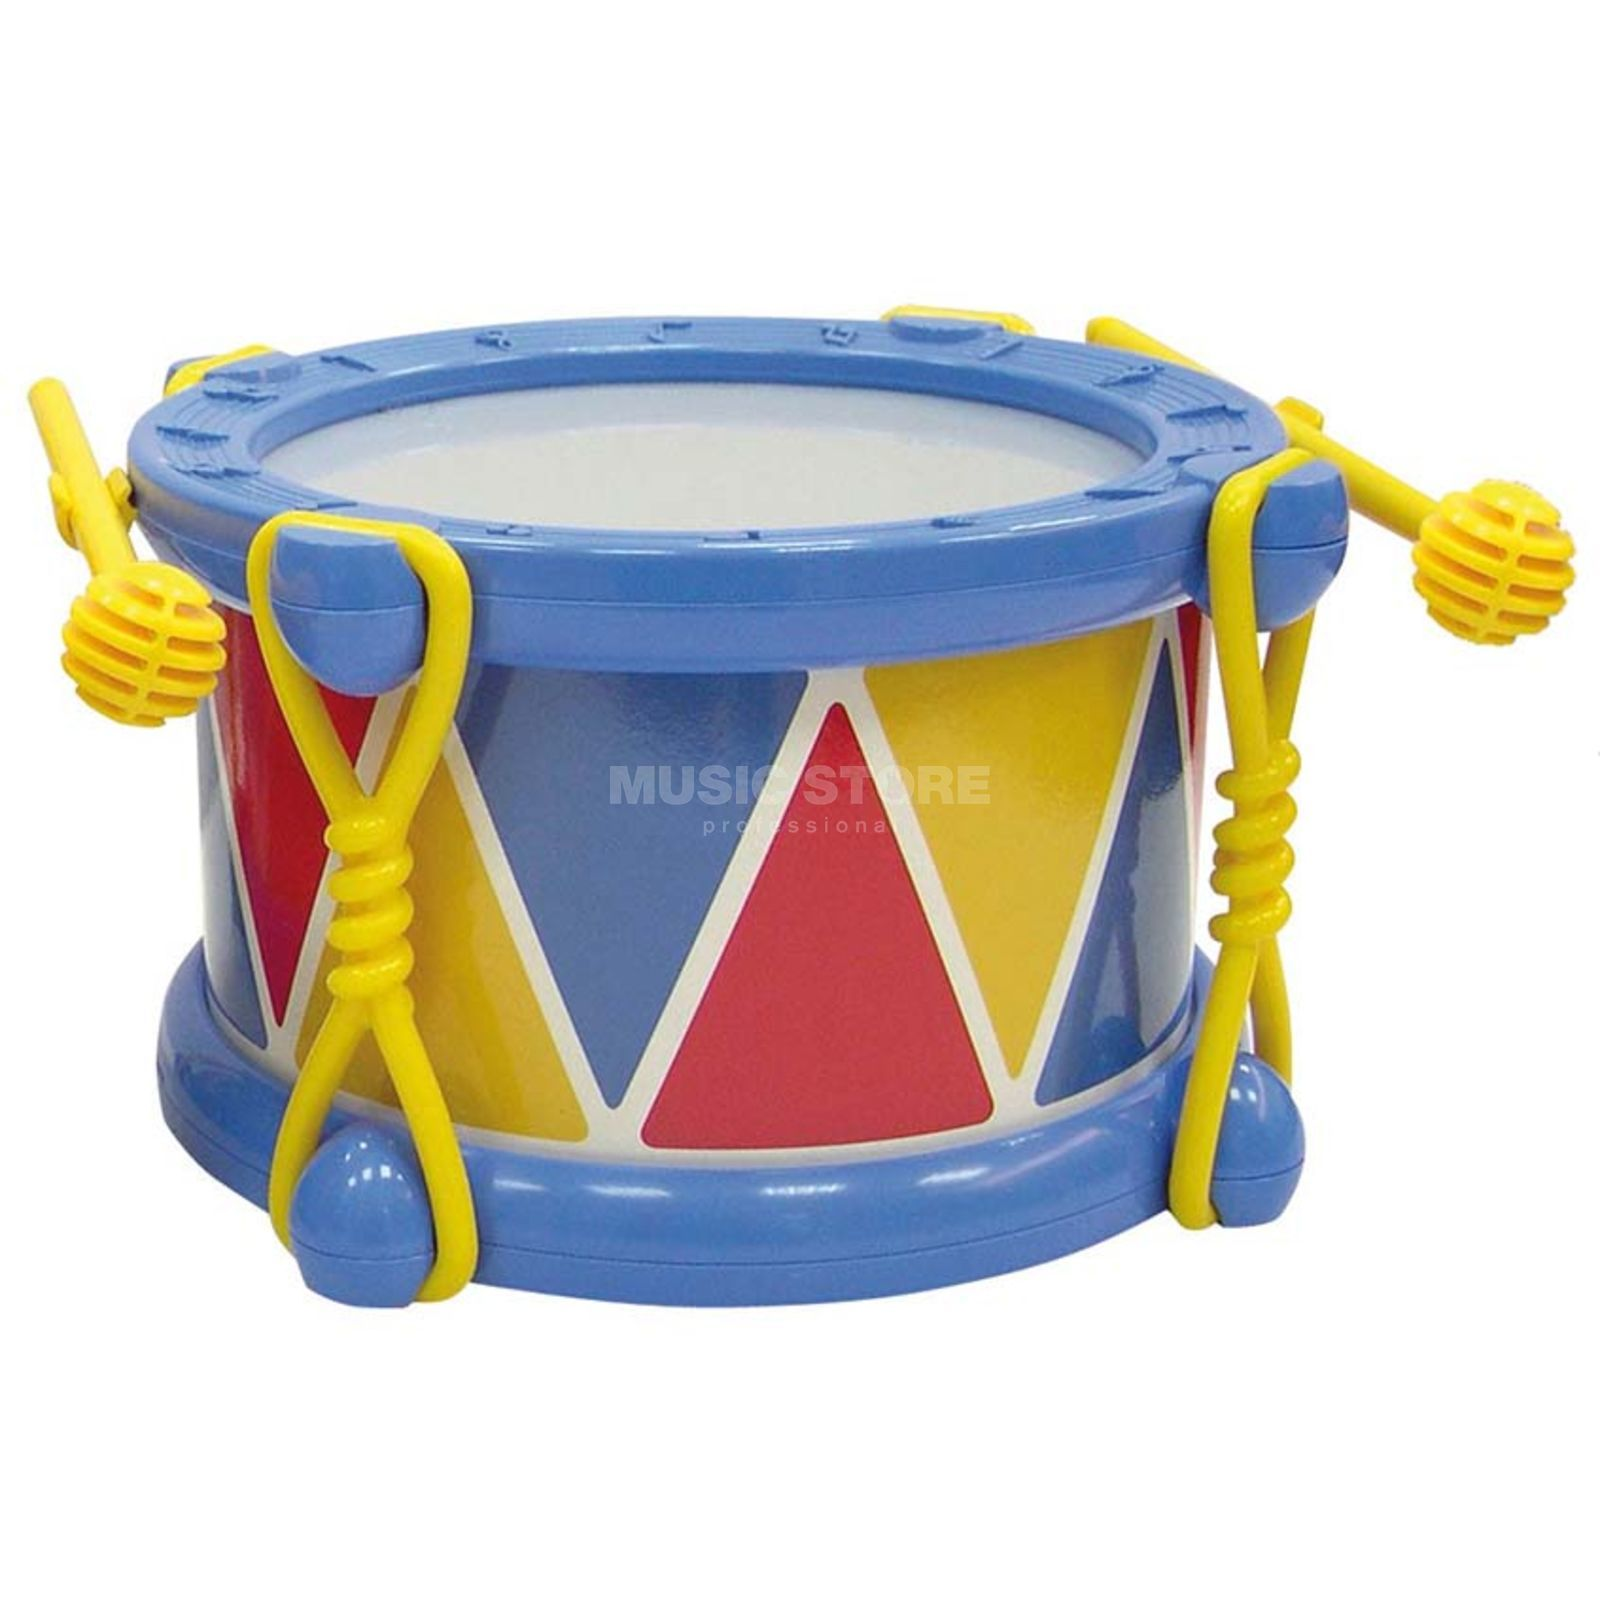 Voggenreiter The little drum for children, 20,5 cm Produktbillede